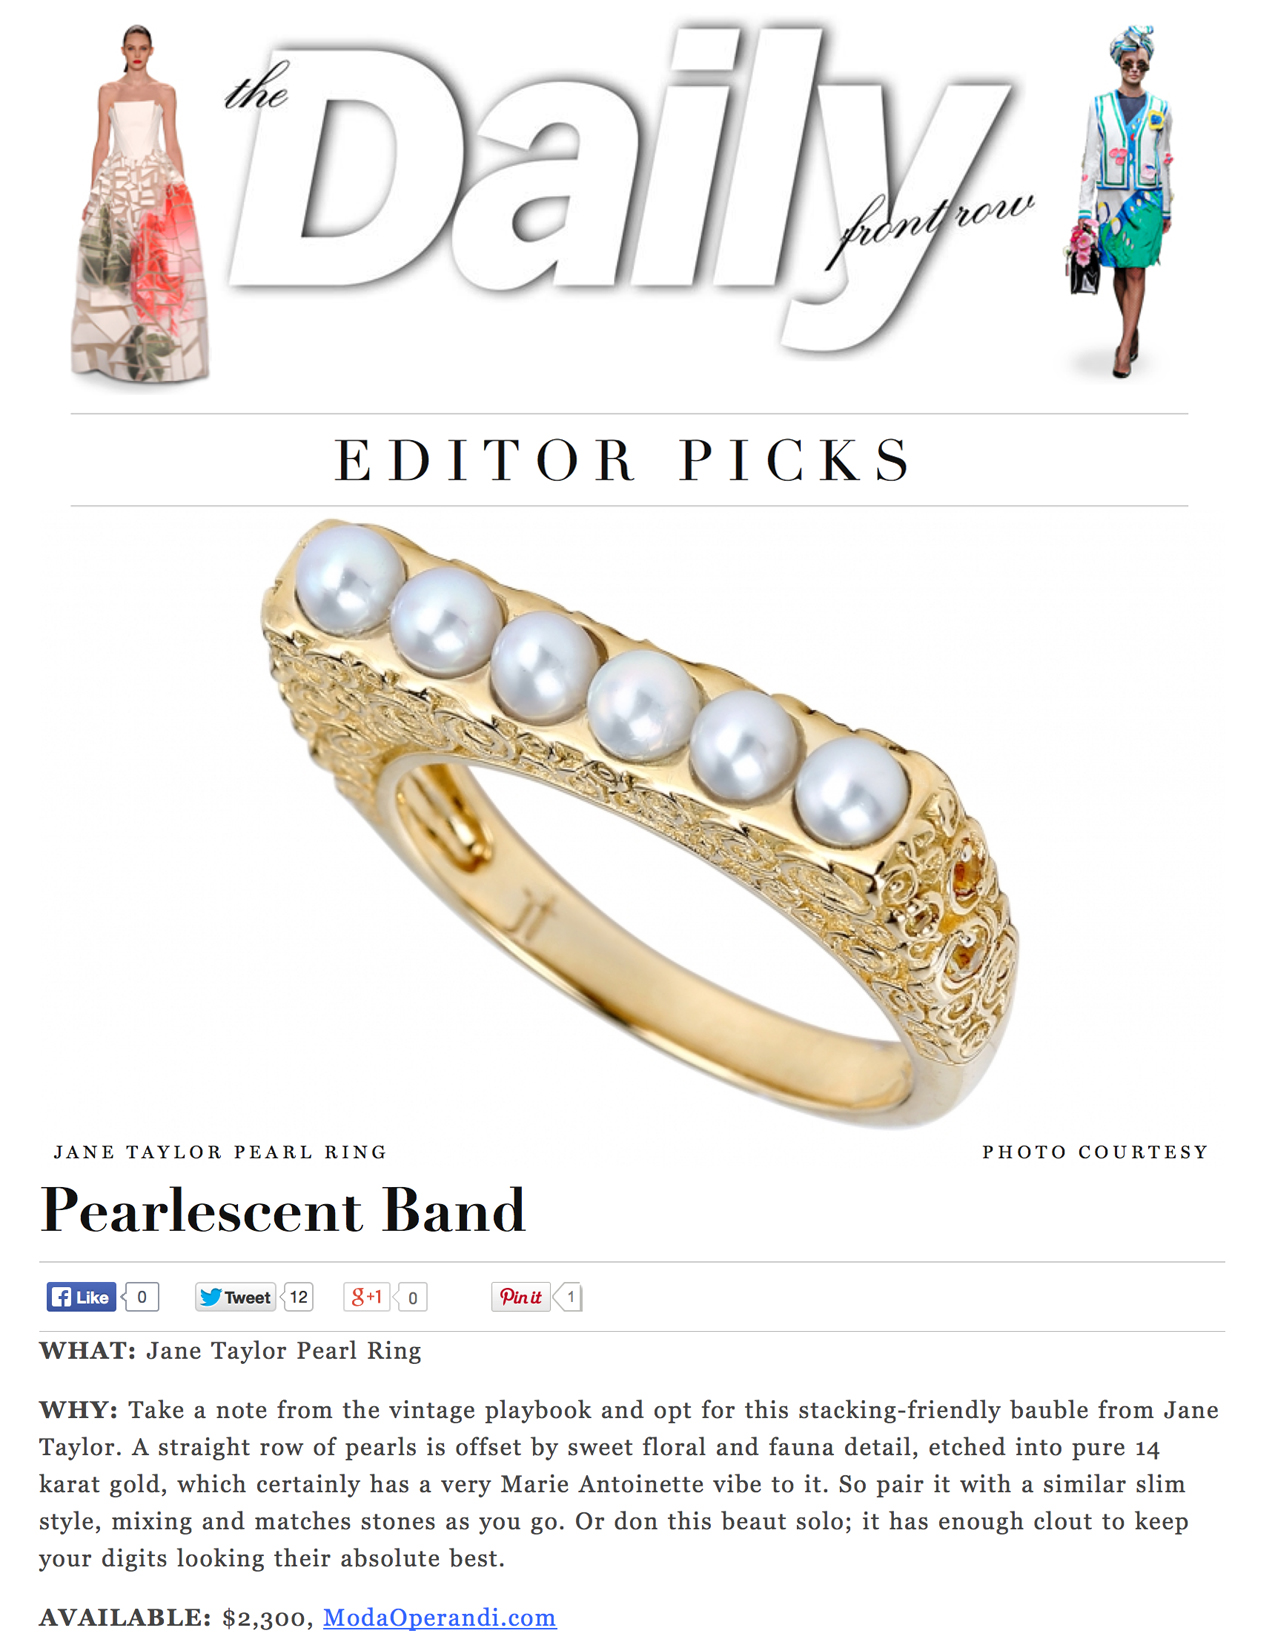 2014-8.8-The Daily Front Row-online.jpg